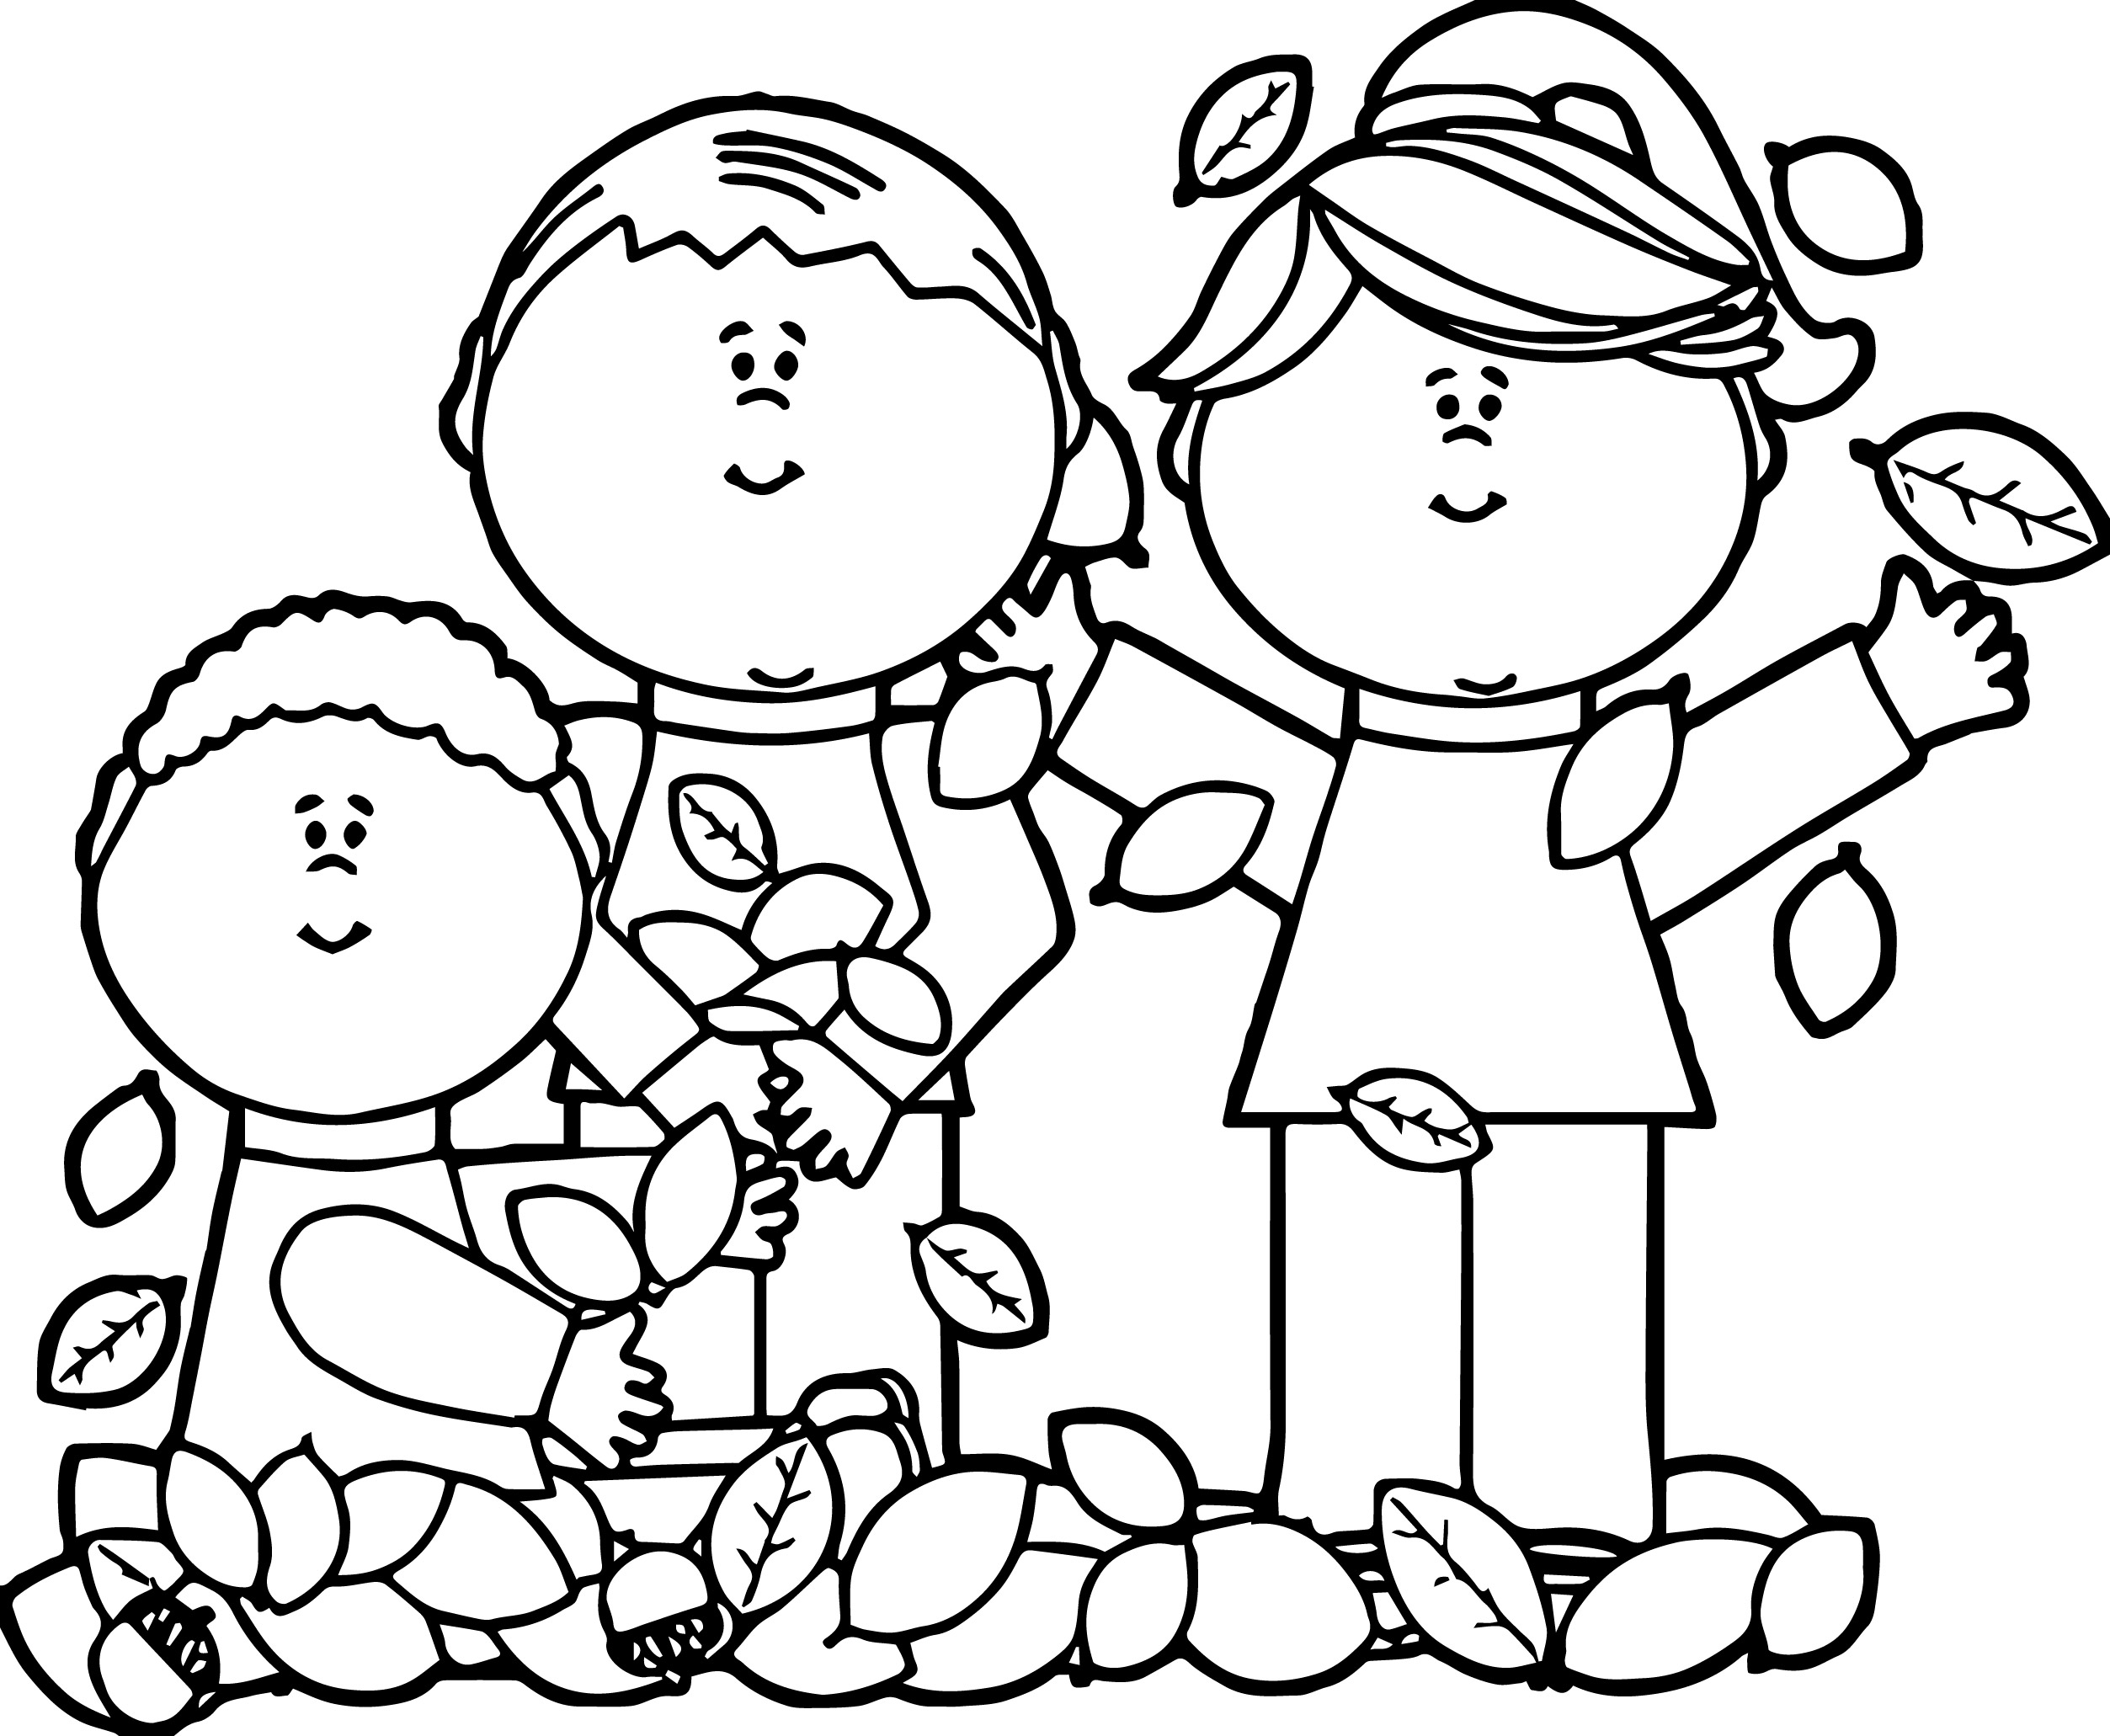 Coloring Pages Kids Playing Coloring Pages kids playing coloring pages eassume com eassume